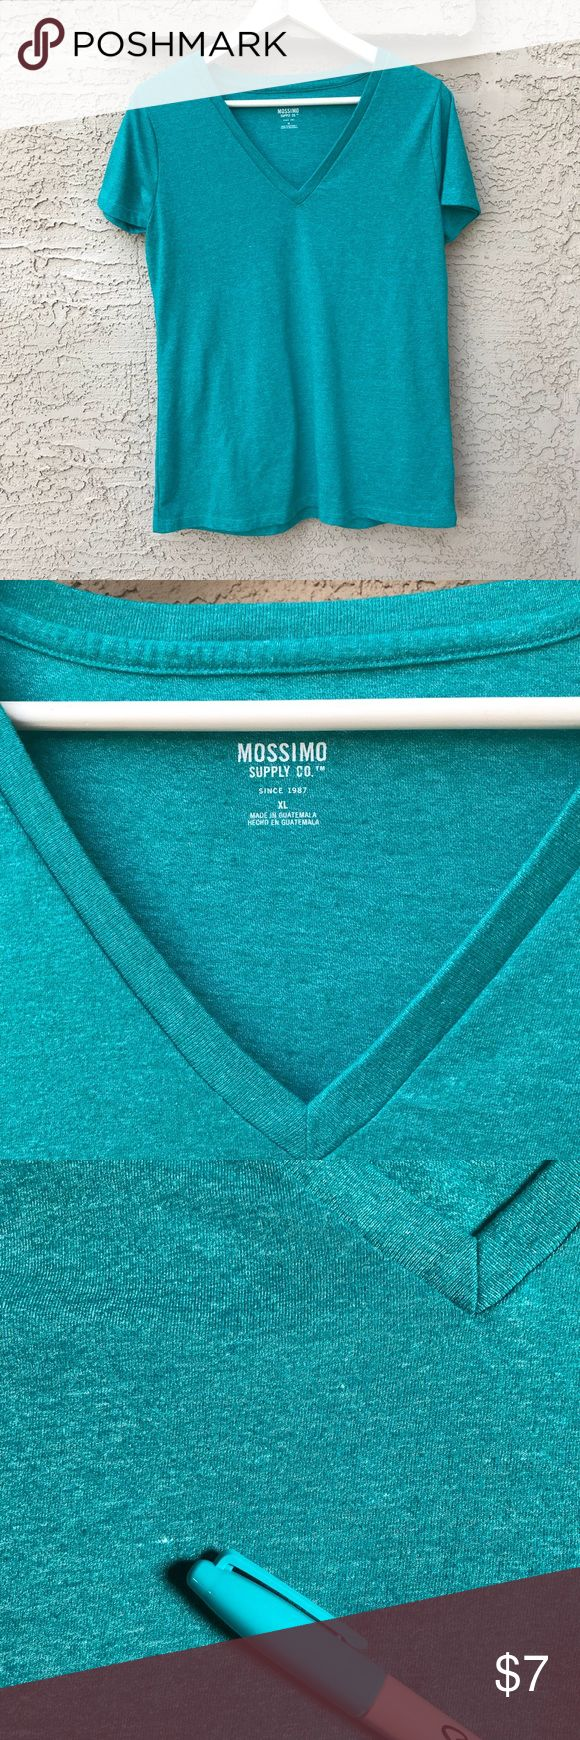 """🆕 Mossimo XL V-Neck T-Shirt Heather Green Teal This green / teal heather Mossimo v-neck t-shirt would make a nice staple casual item. Never worn, but was washed once. No tags. Excellent shape and bright fun color. Measures 40"""" bust and about 28"""" from top seam at shoulder to bottom hem. Small white thread spot on front due to the nature of heather material weave (shown).   ************************ 🧐 Inspect photos ❓Ask questions  👗👗Create bundles 📷 Photo props not included 🌮Thanks for…"""